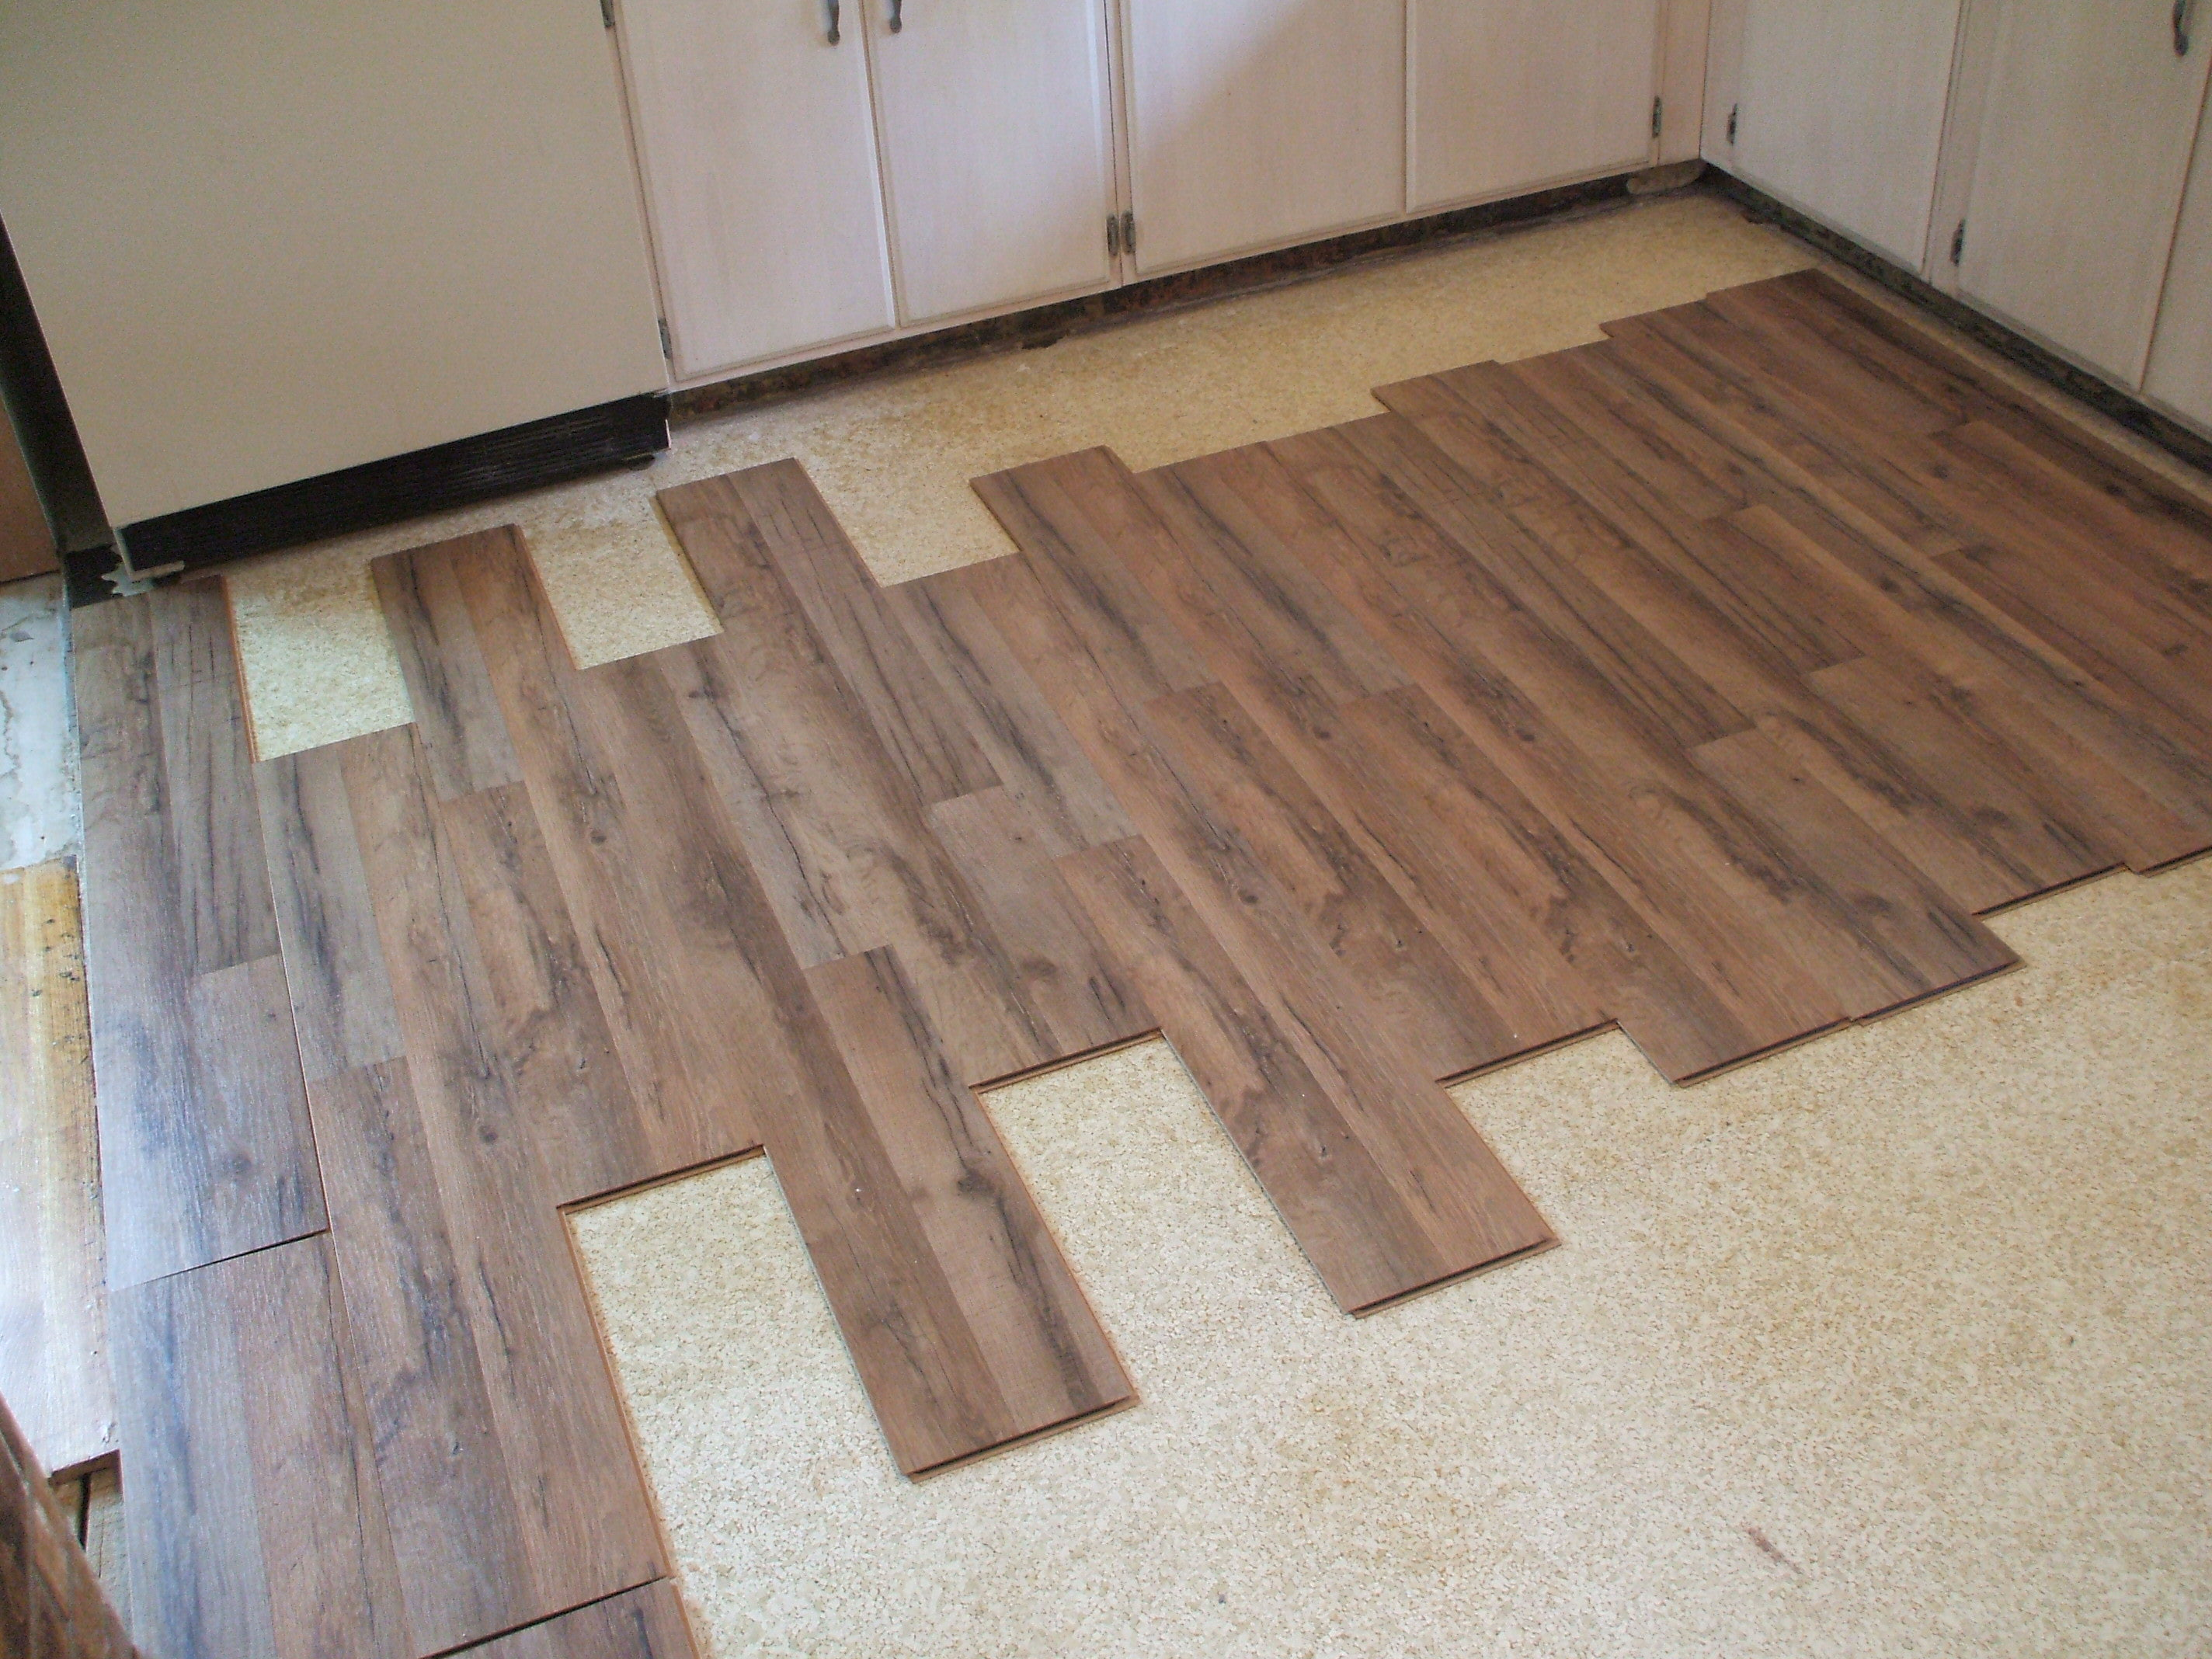 Wood Floor In Kitchen Pros And Cons Flooring Options For Your Rental Home Which Is Best